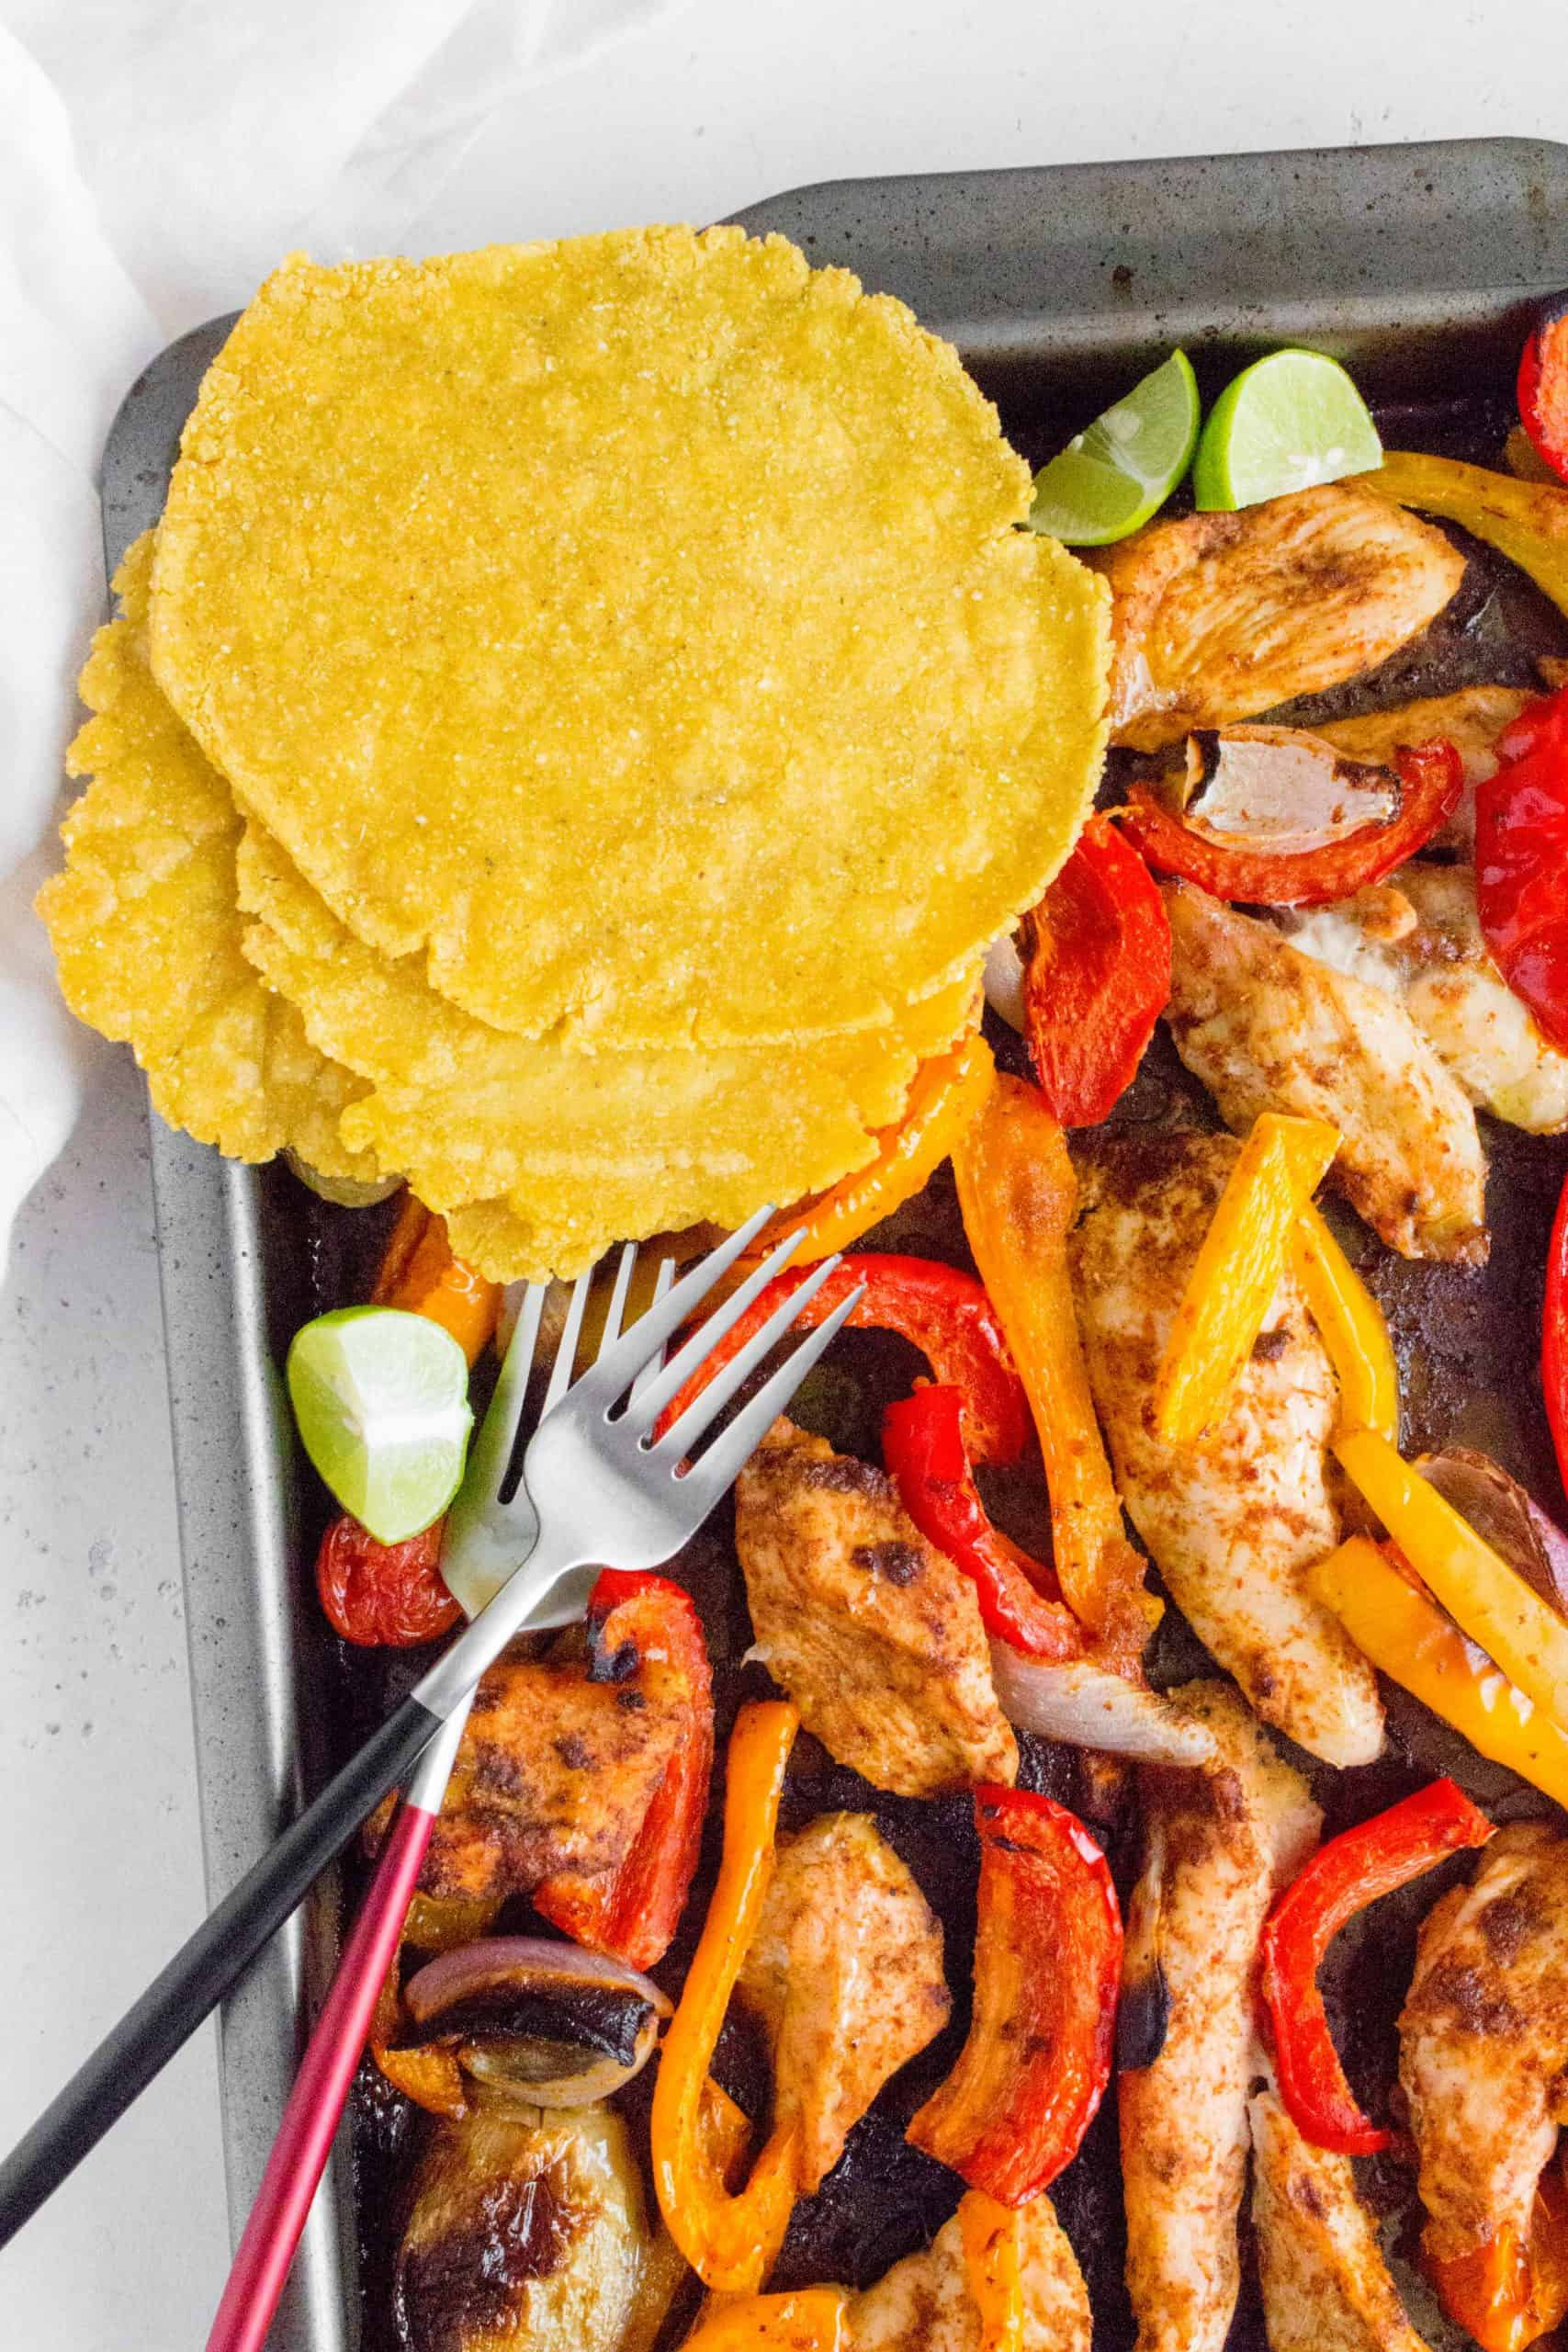 You're going to want to make this Sheet Pan Chili Lime Fajitas ASAP! This zesty chili lime seasoned chicken and veggies cook up in just 30 minutes and is the perfect weeknight dinner or as a meal prep!